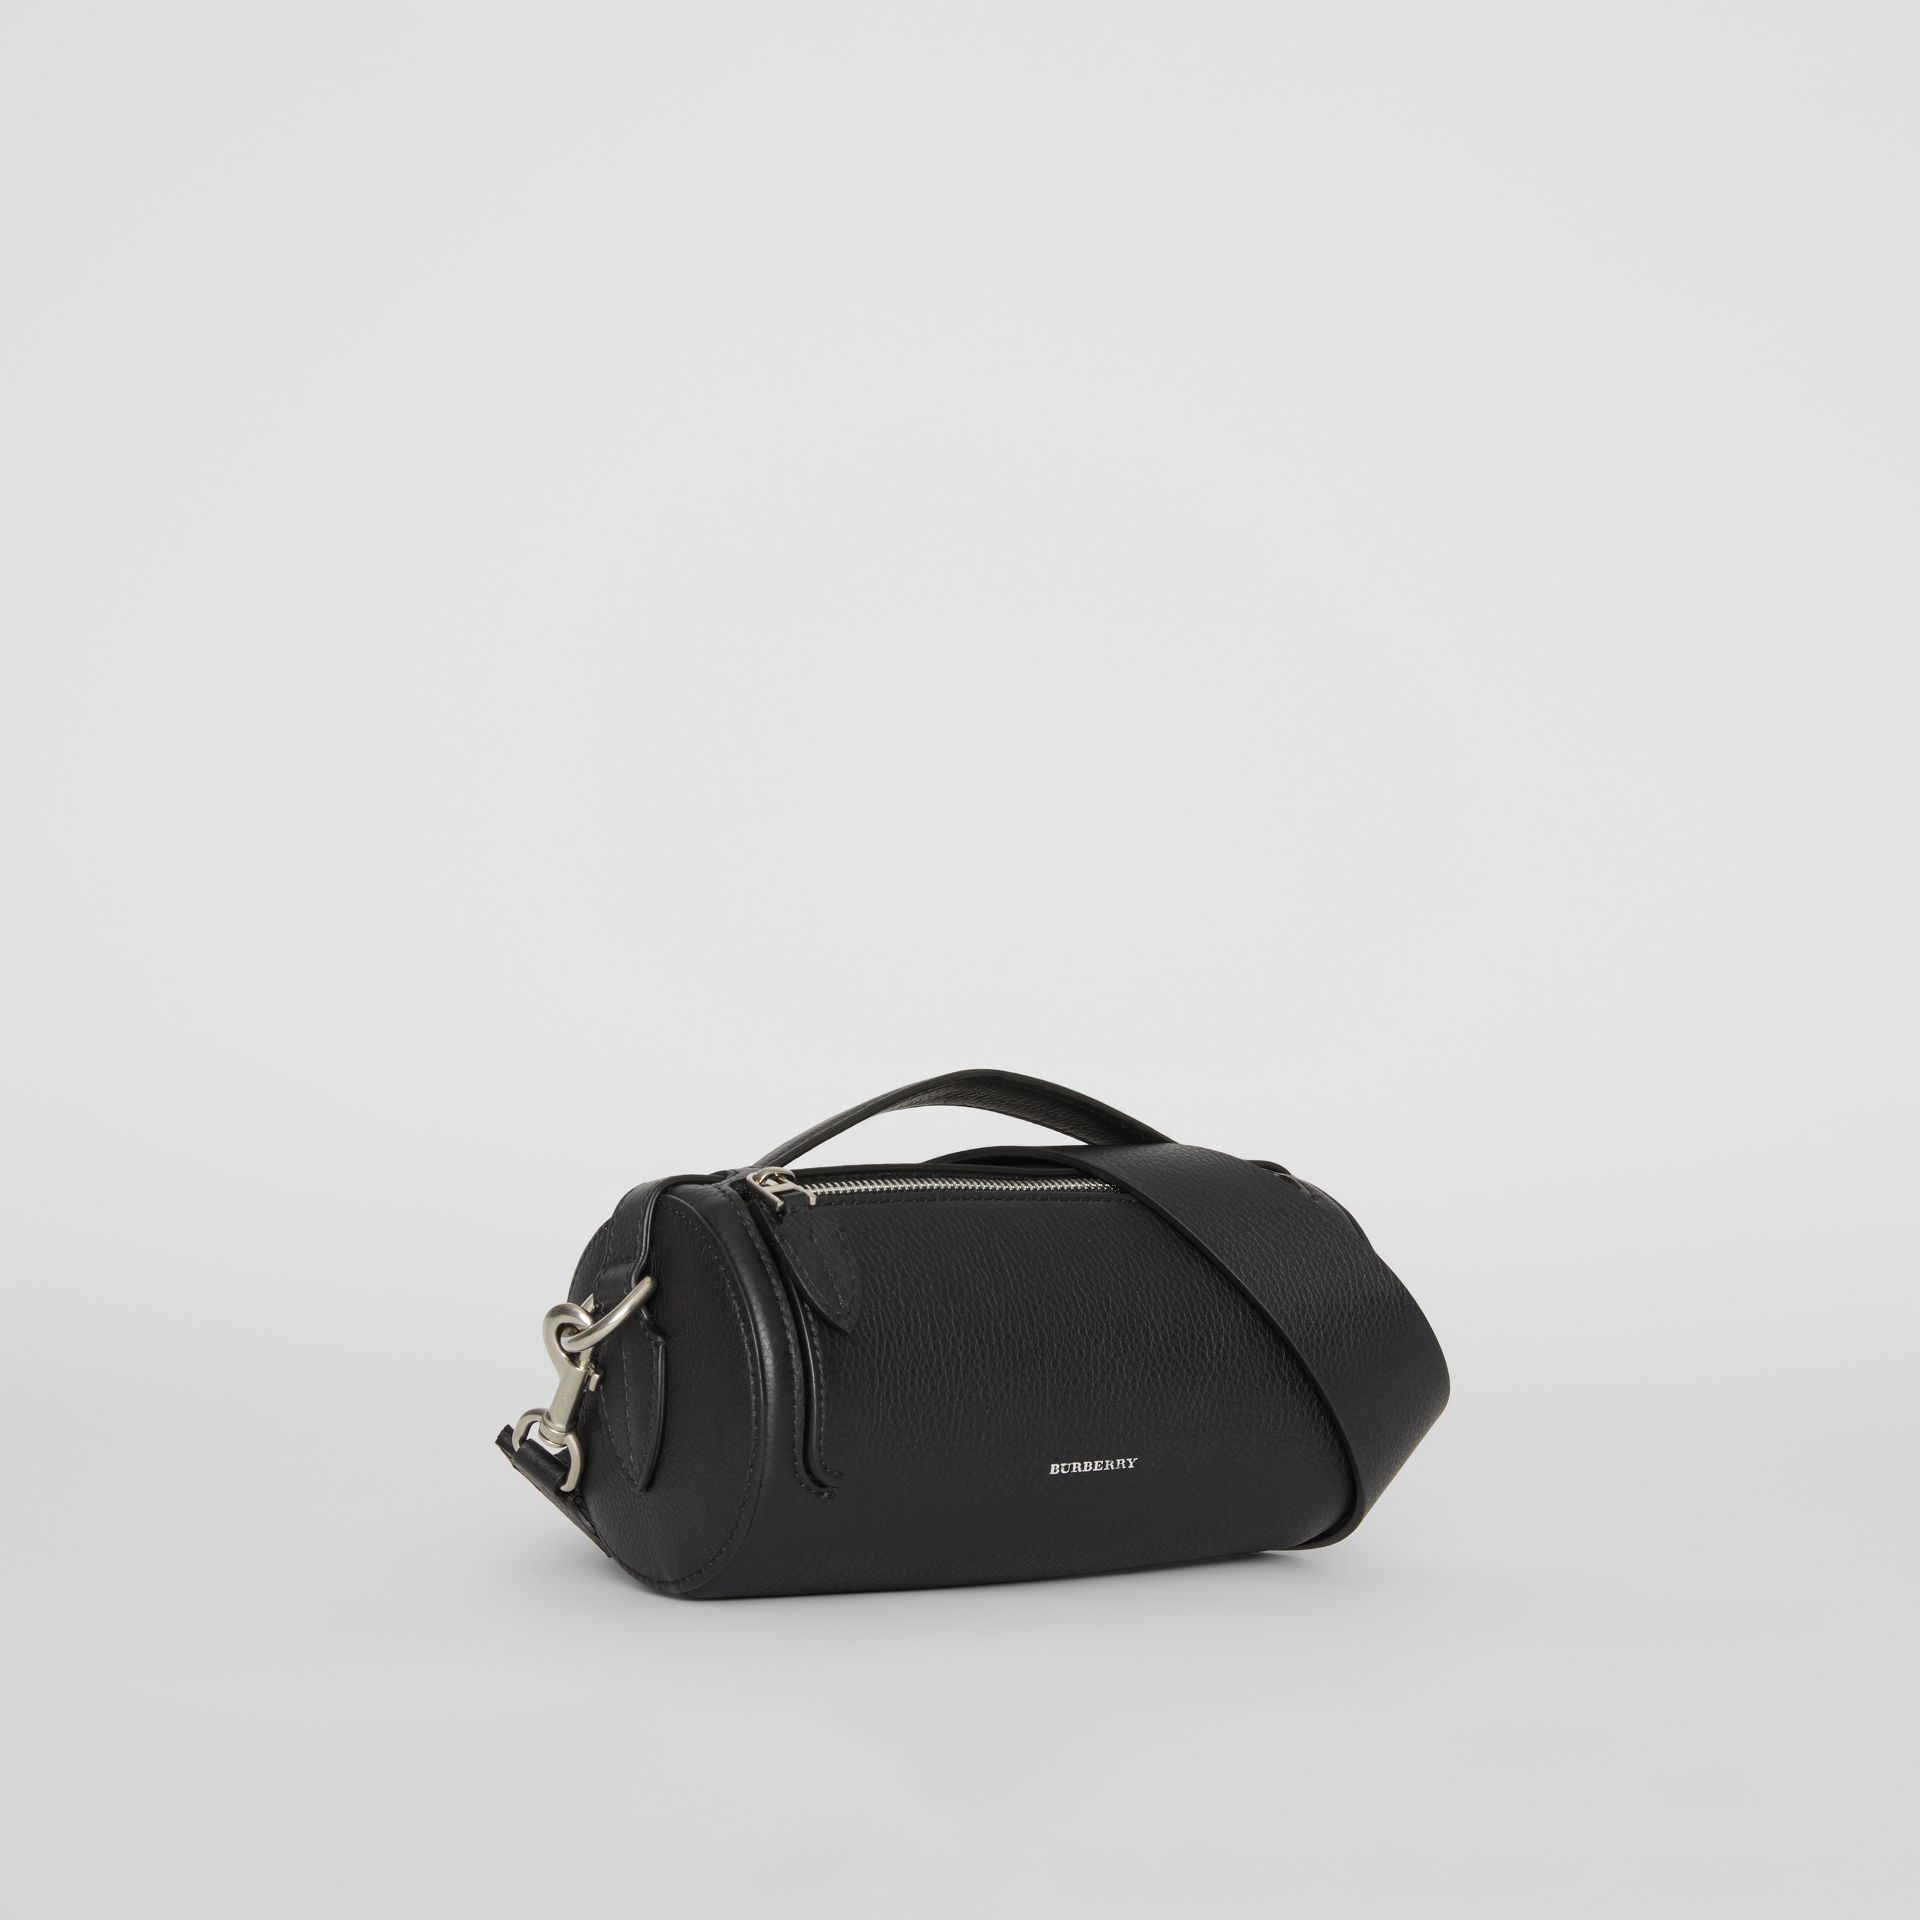 Borsa The Barrel in pelle (Nero) - Donna | Burberry - immagine della galleria 6